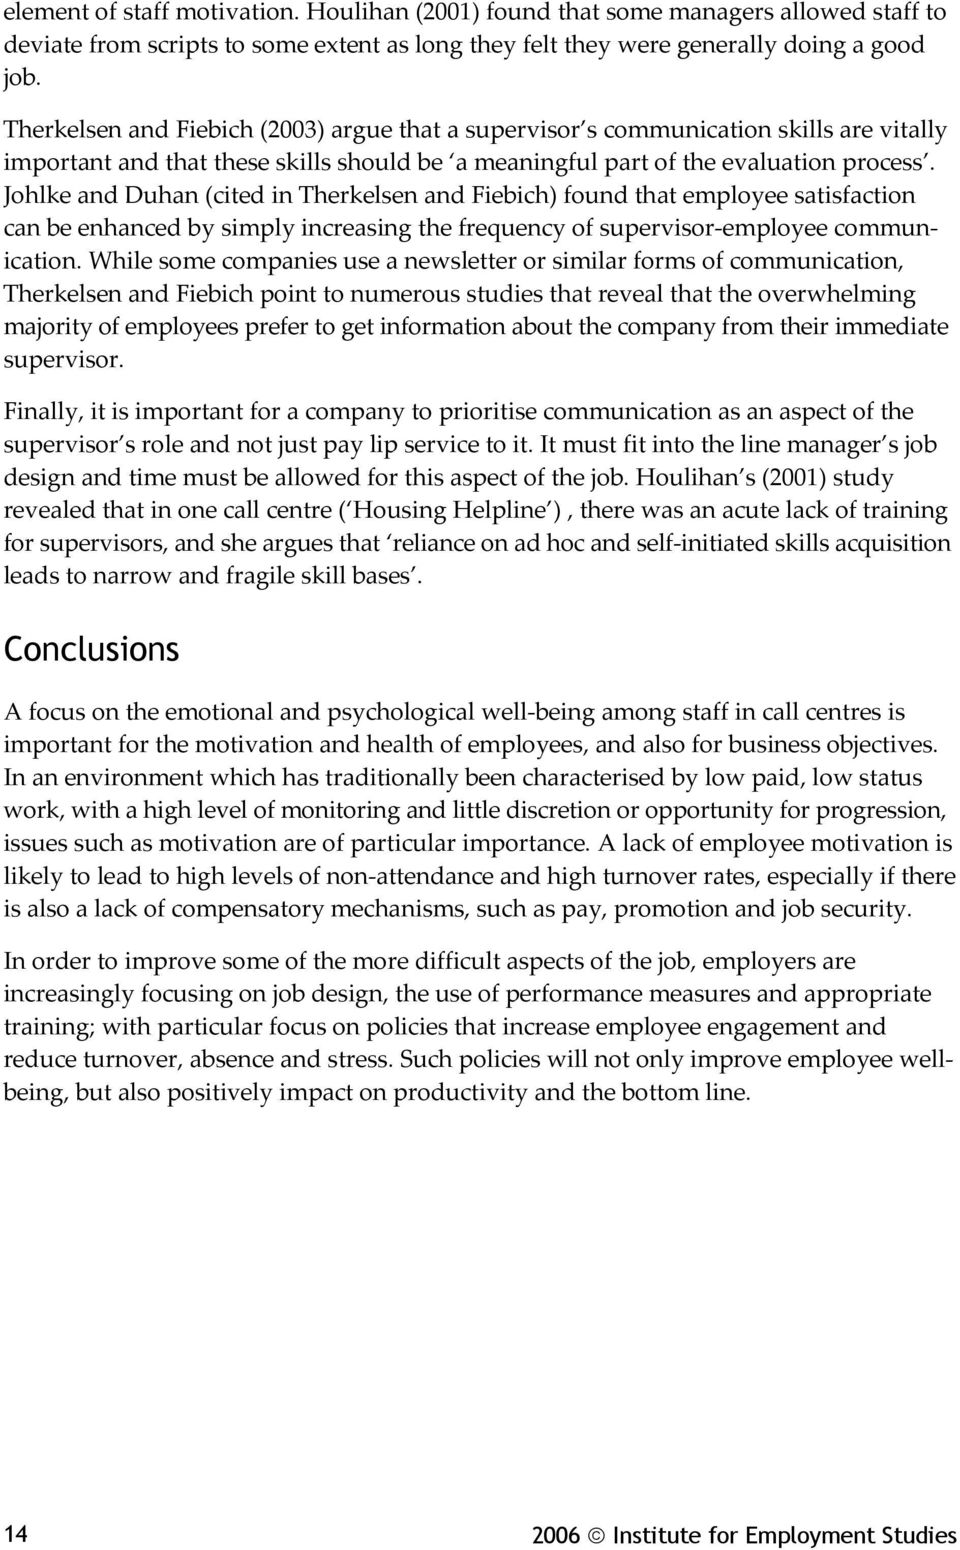 Johlke and Duhan (cited in Therkelsen and Fiebich) found that employee satisfaction can be enhanced by simply increasing the frequency of supervisor employee communication.